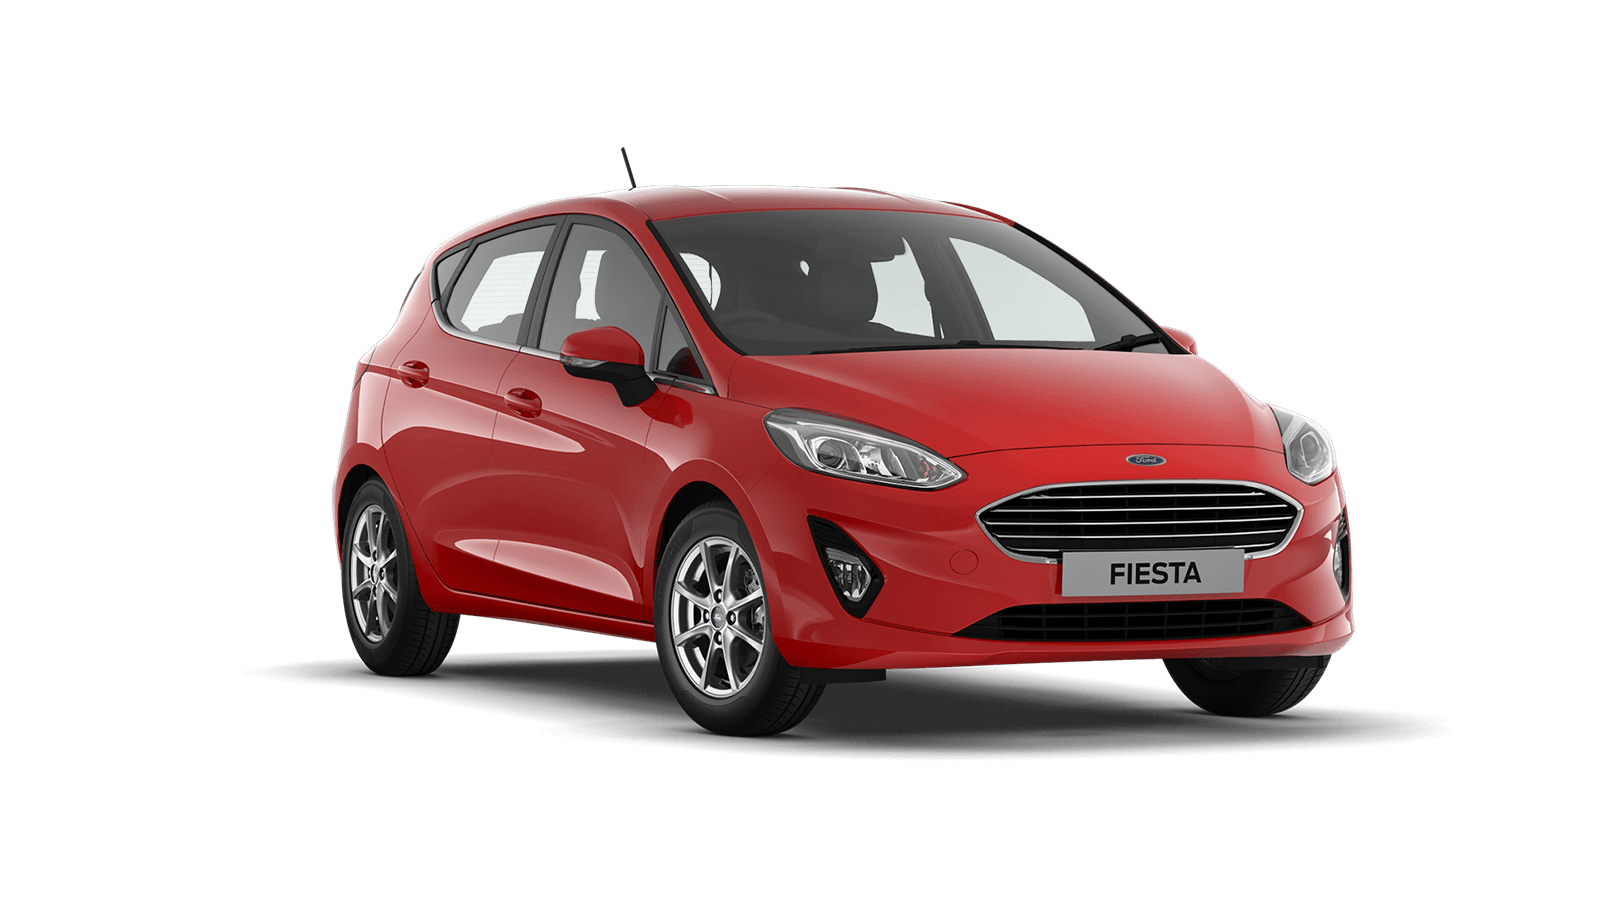 Ford Fiesta Zetec 1.0T EcoBoost 100PS at Browne & Day